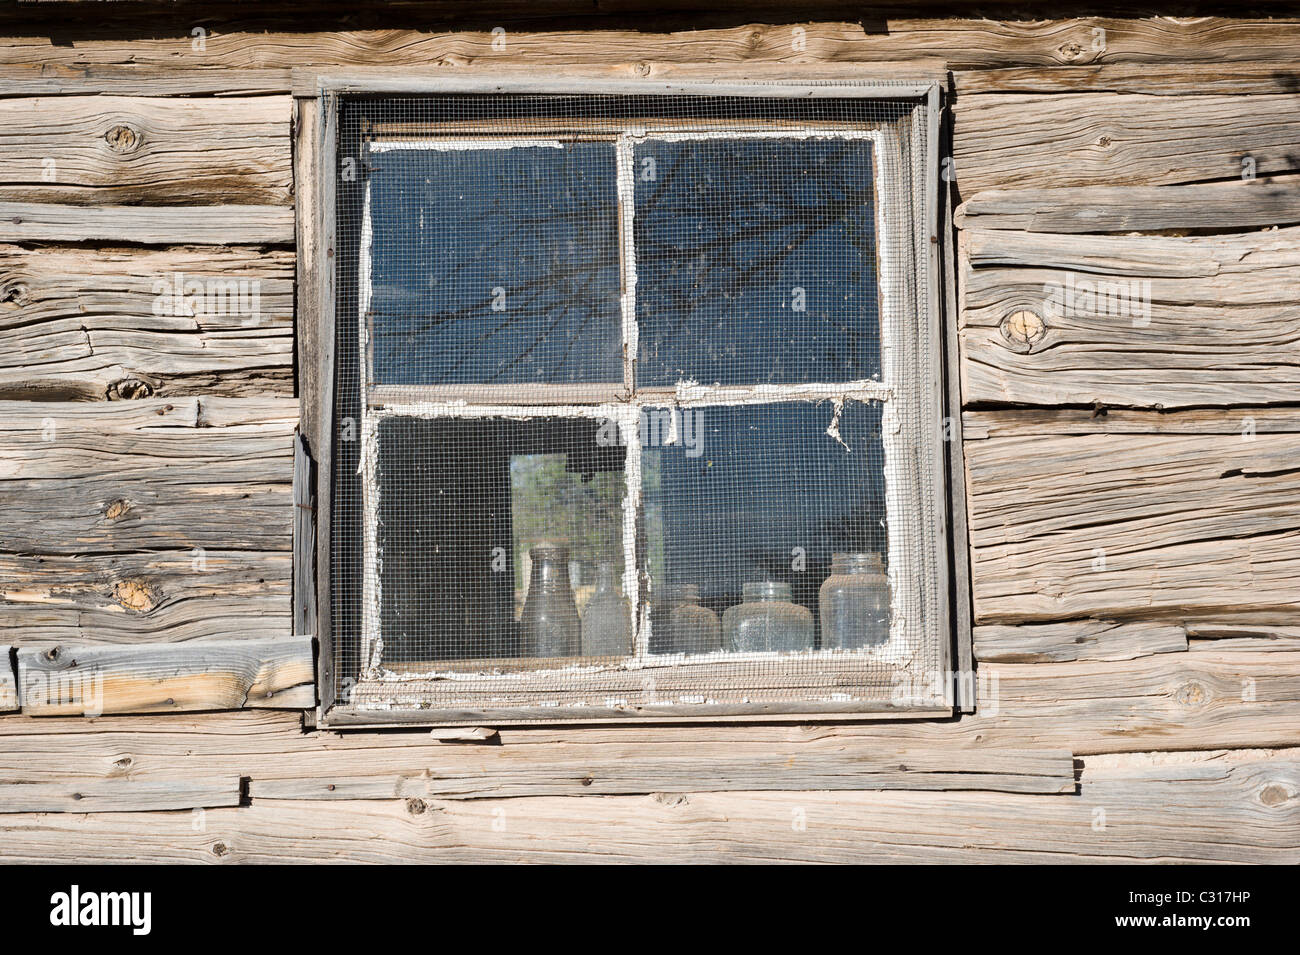 American pioneer, hand-hewn log cabin, with old bottles on the window sill in Ancho, New Mexico. - Stock Image